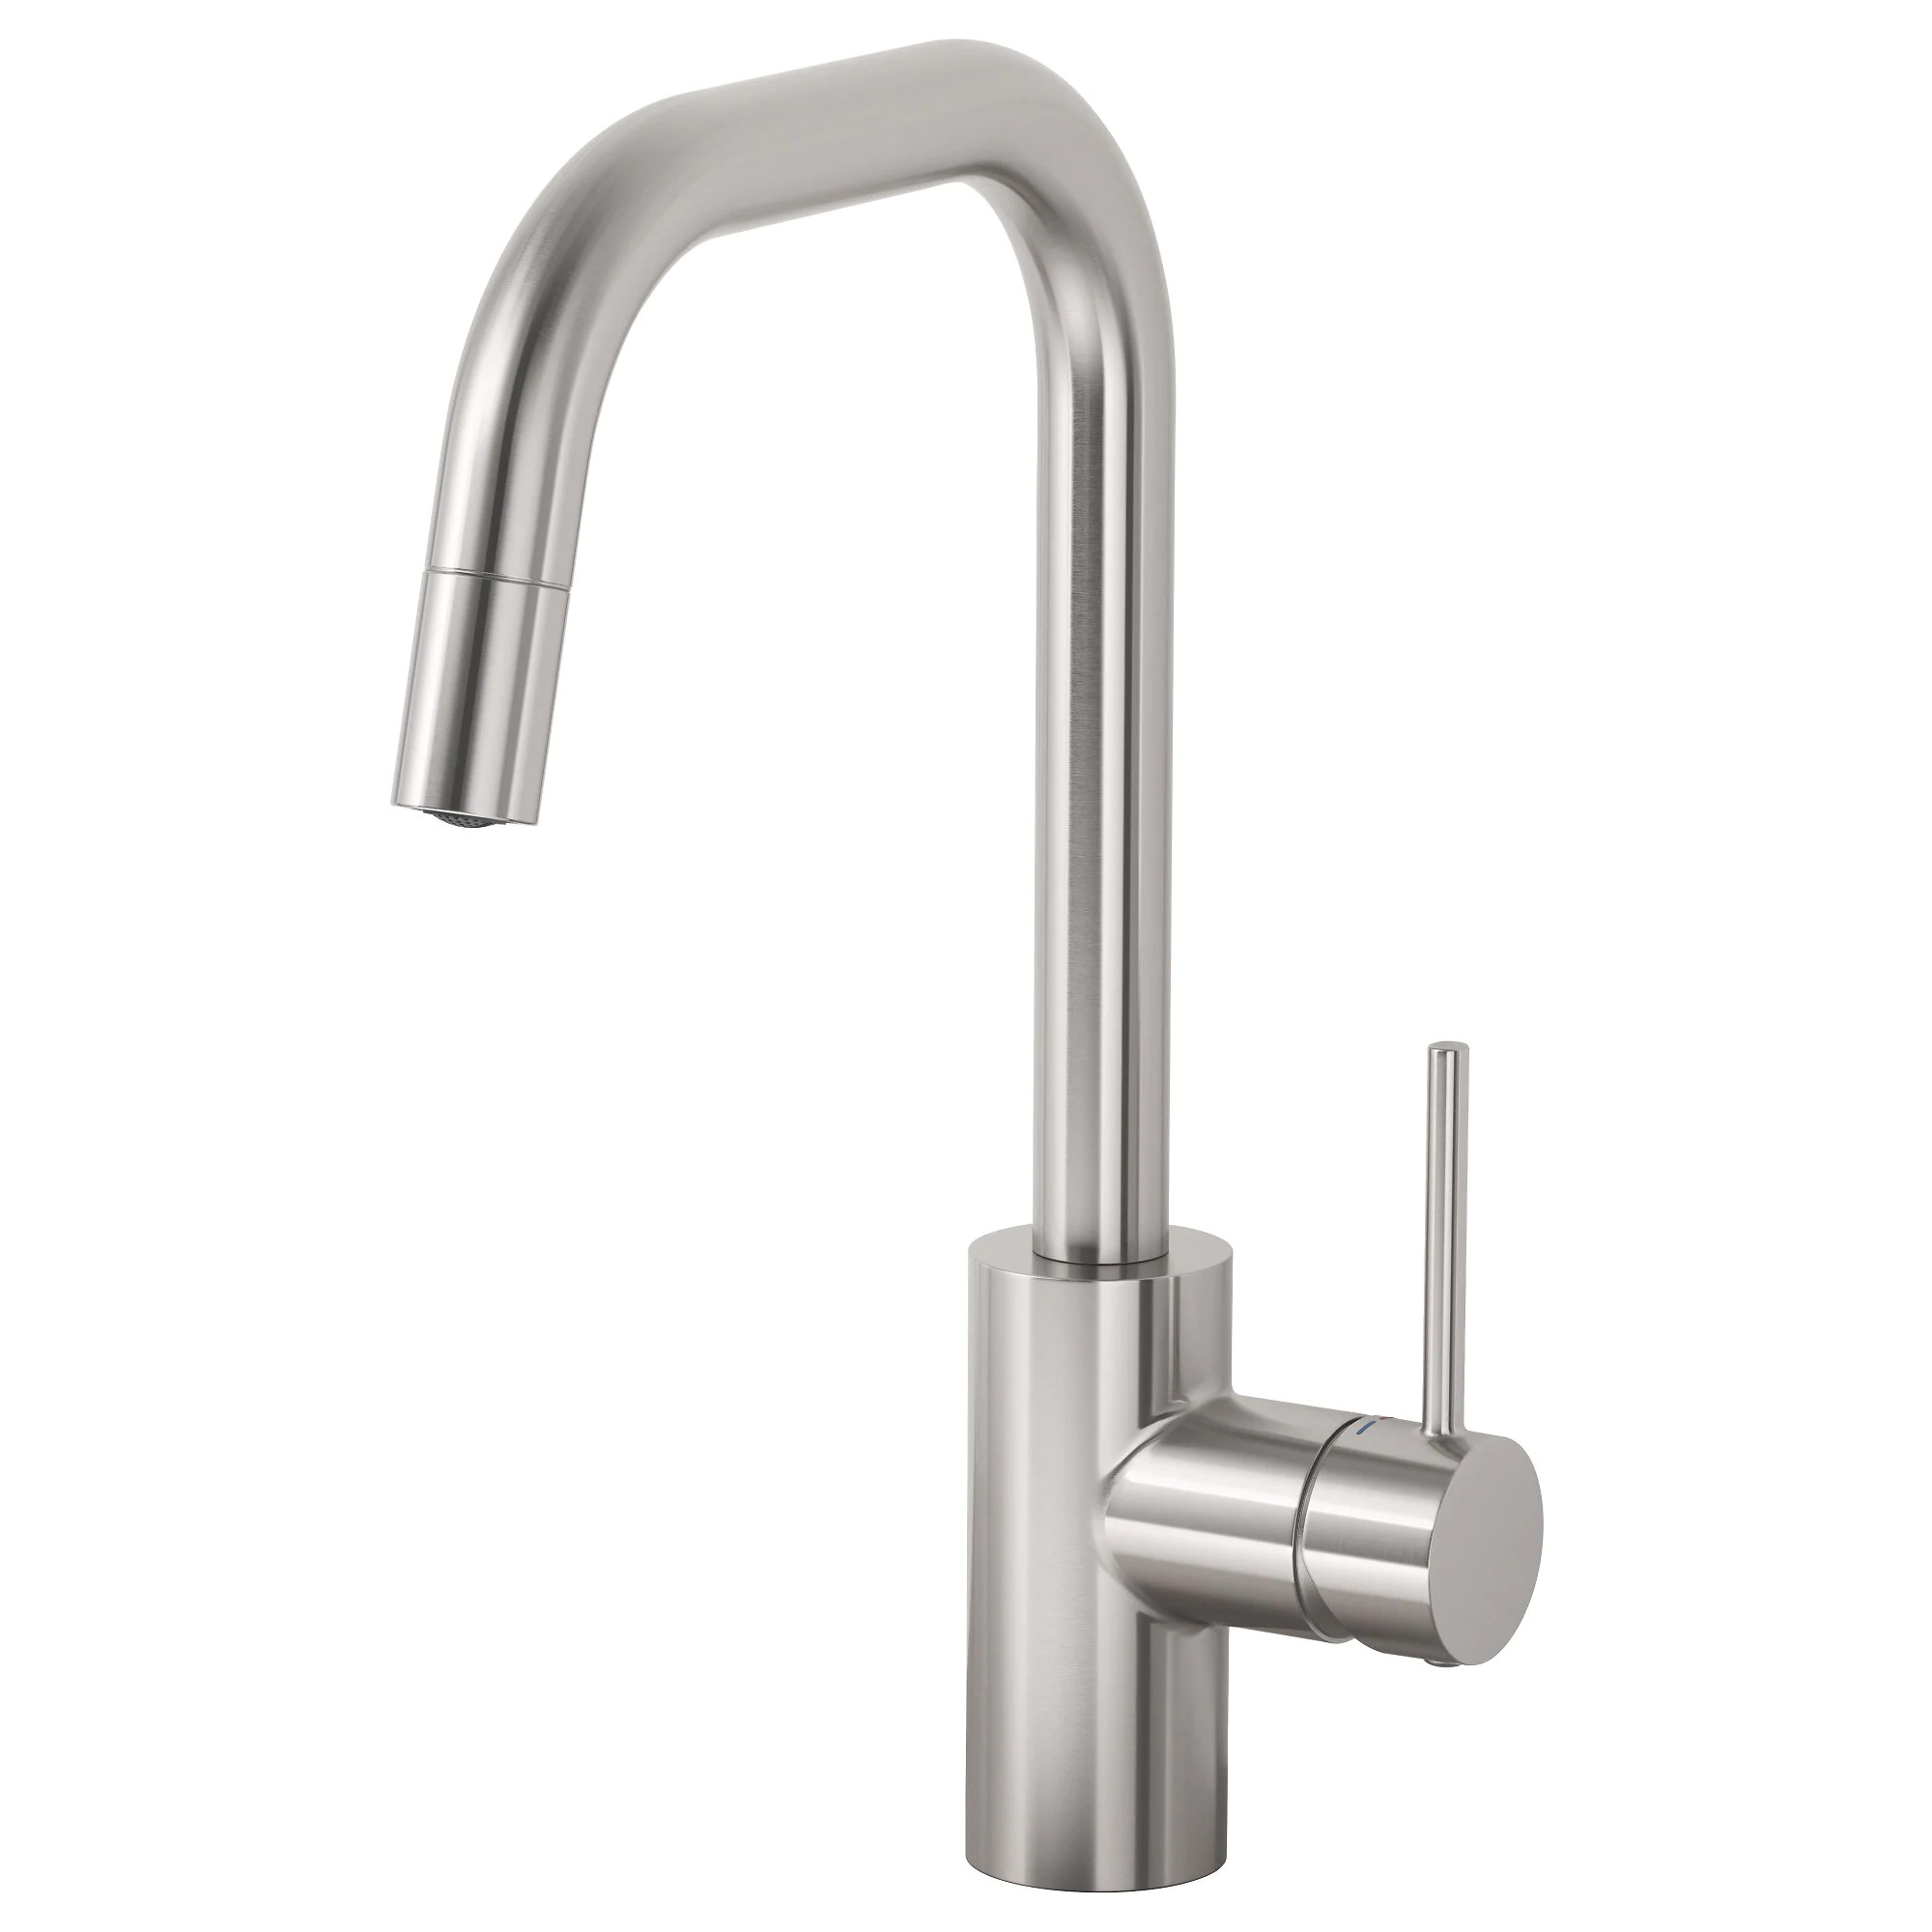 Kitchen Mixer Tap Älmaren Kitchen Mixer Tap W Pull Out Spout Stainless Steel Colour